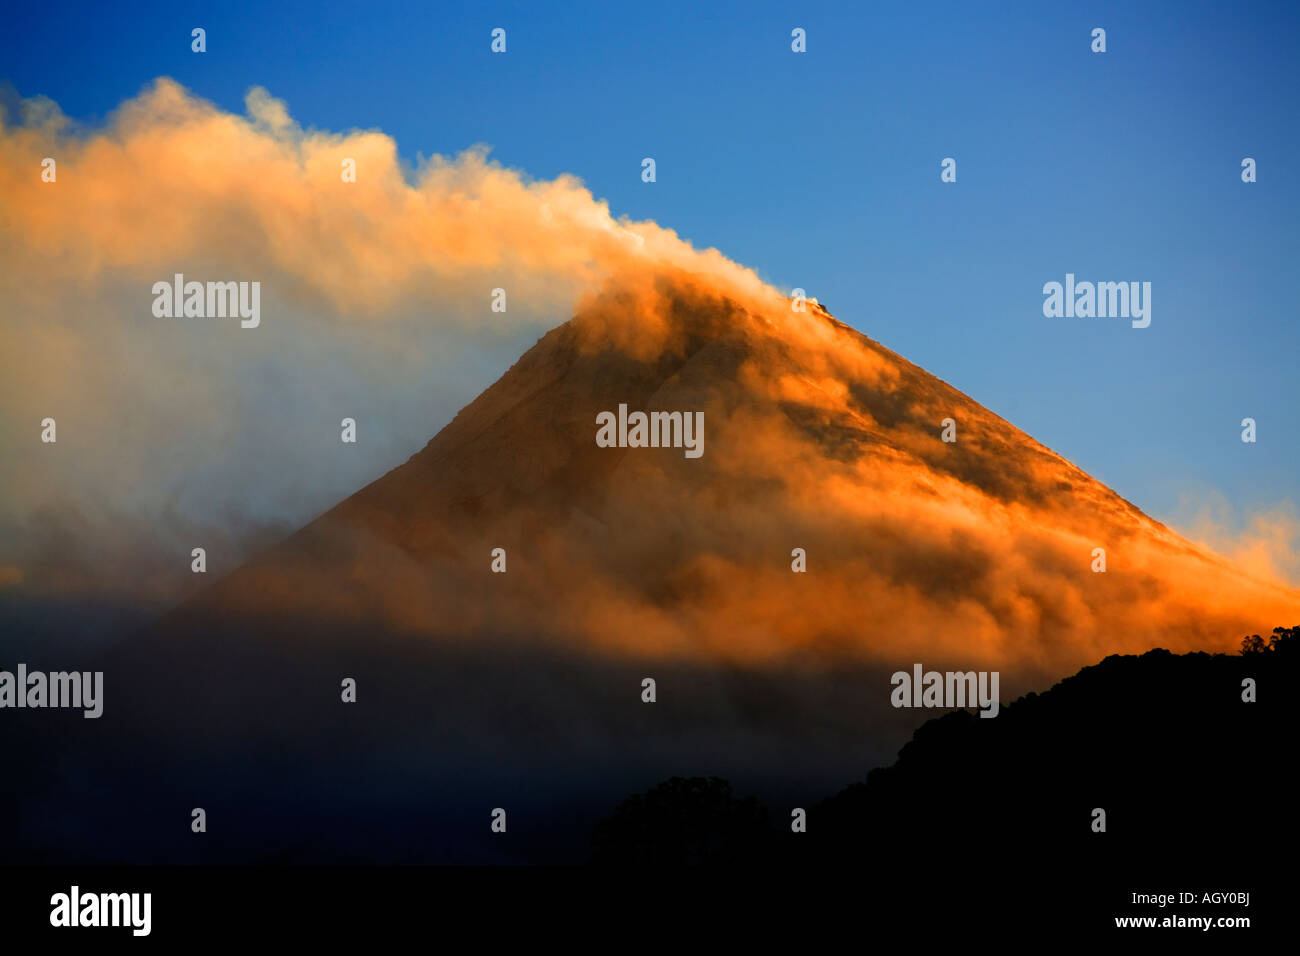 Mt. Merapi, East Java, Indonesia, a very active volcano - Stock Image